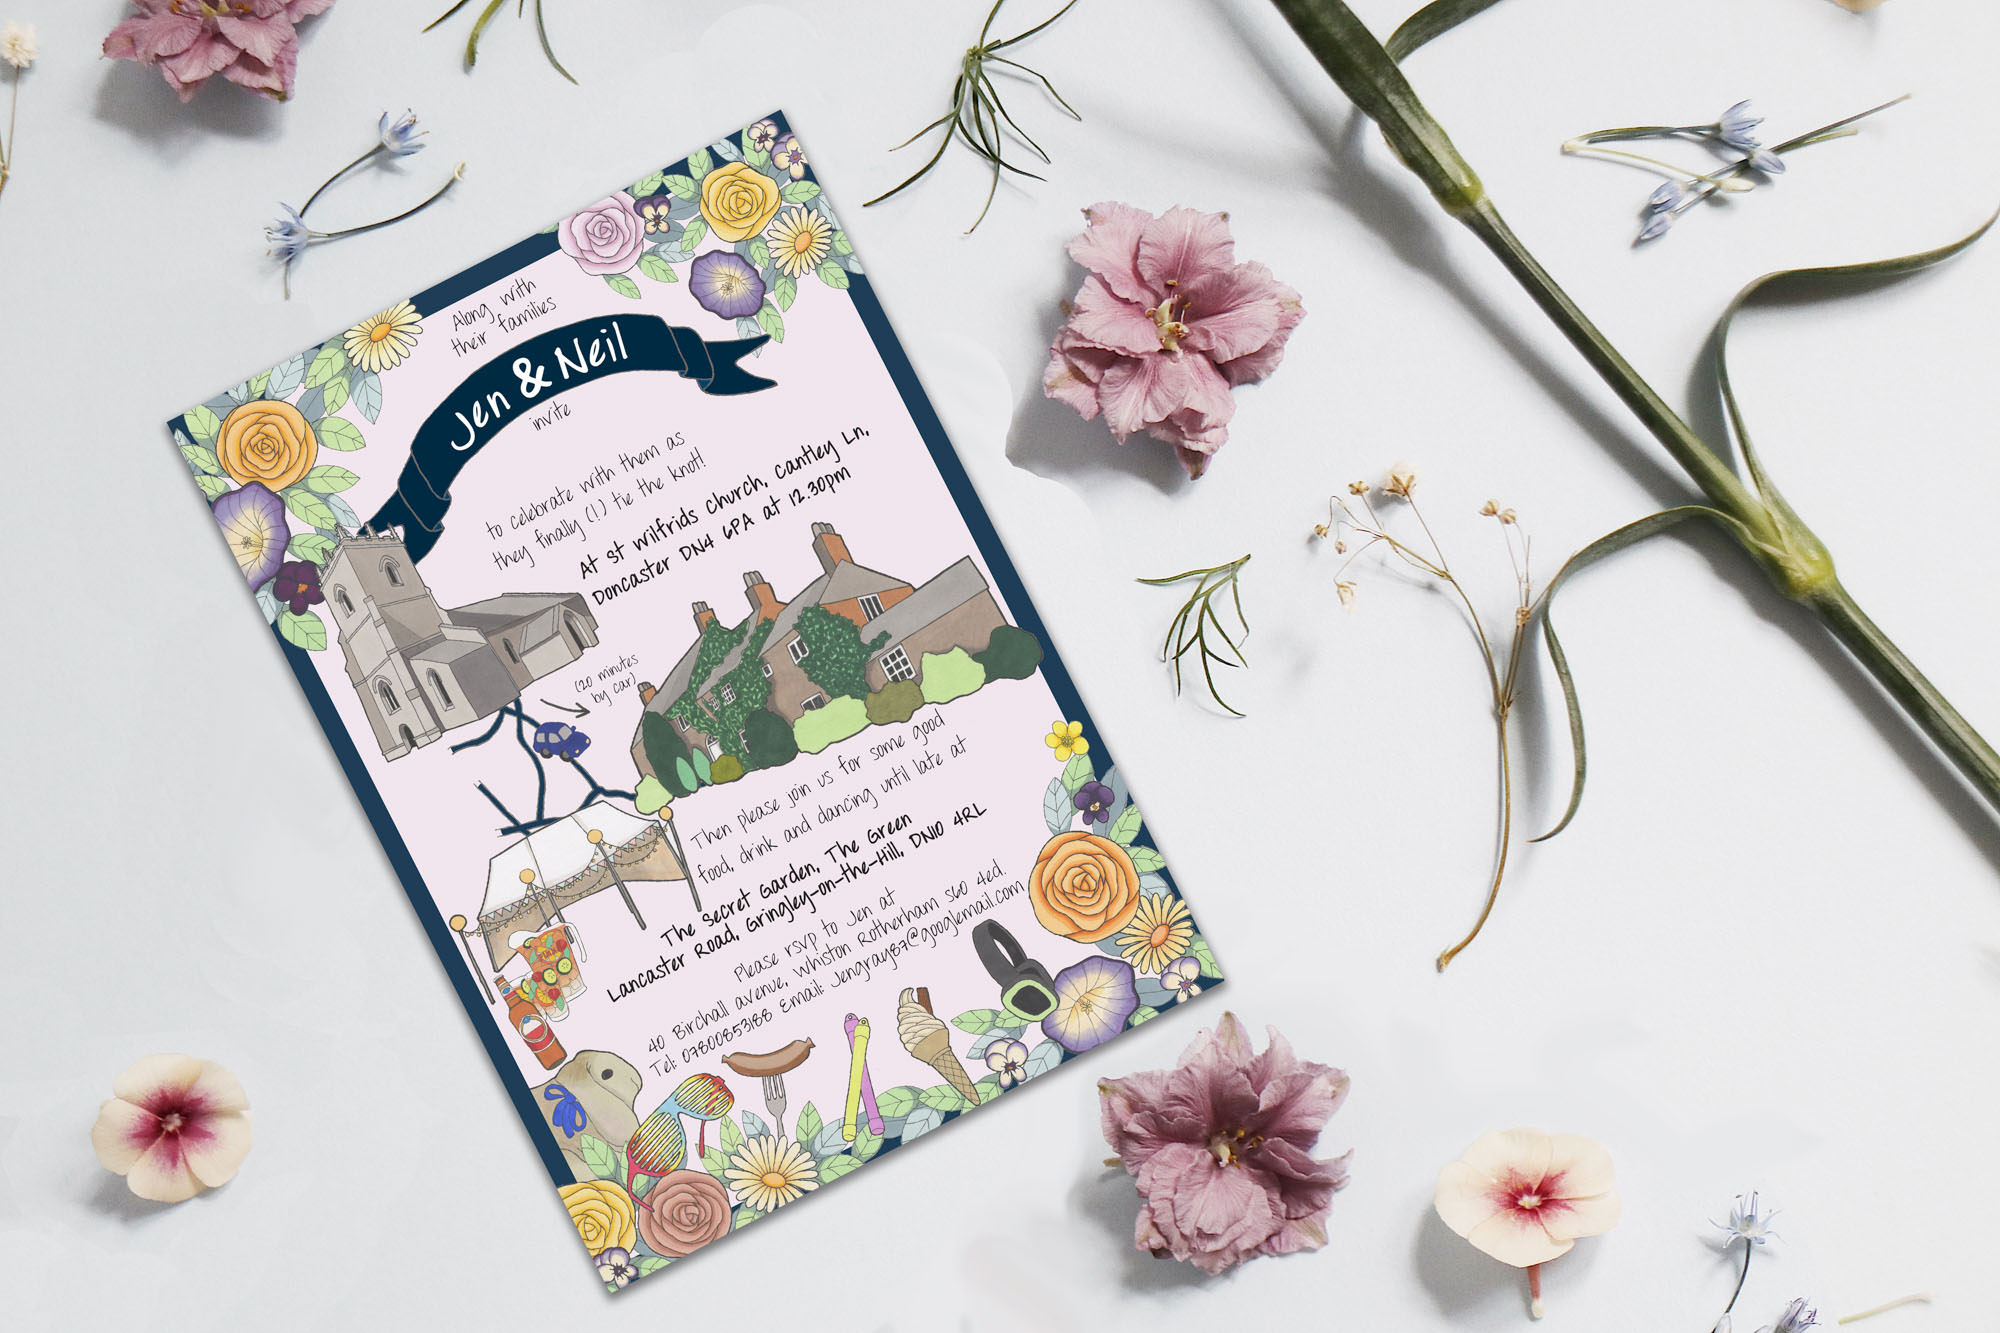 Paper Heart Stationery - Illustrated, Bespoke Wedding stationery